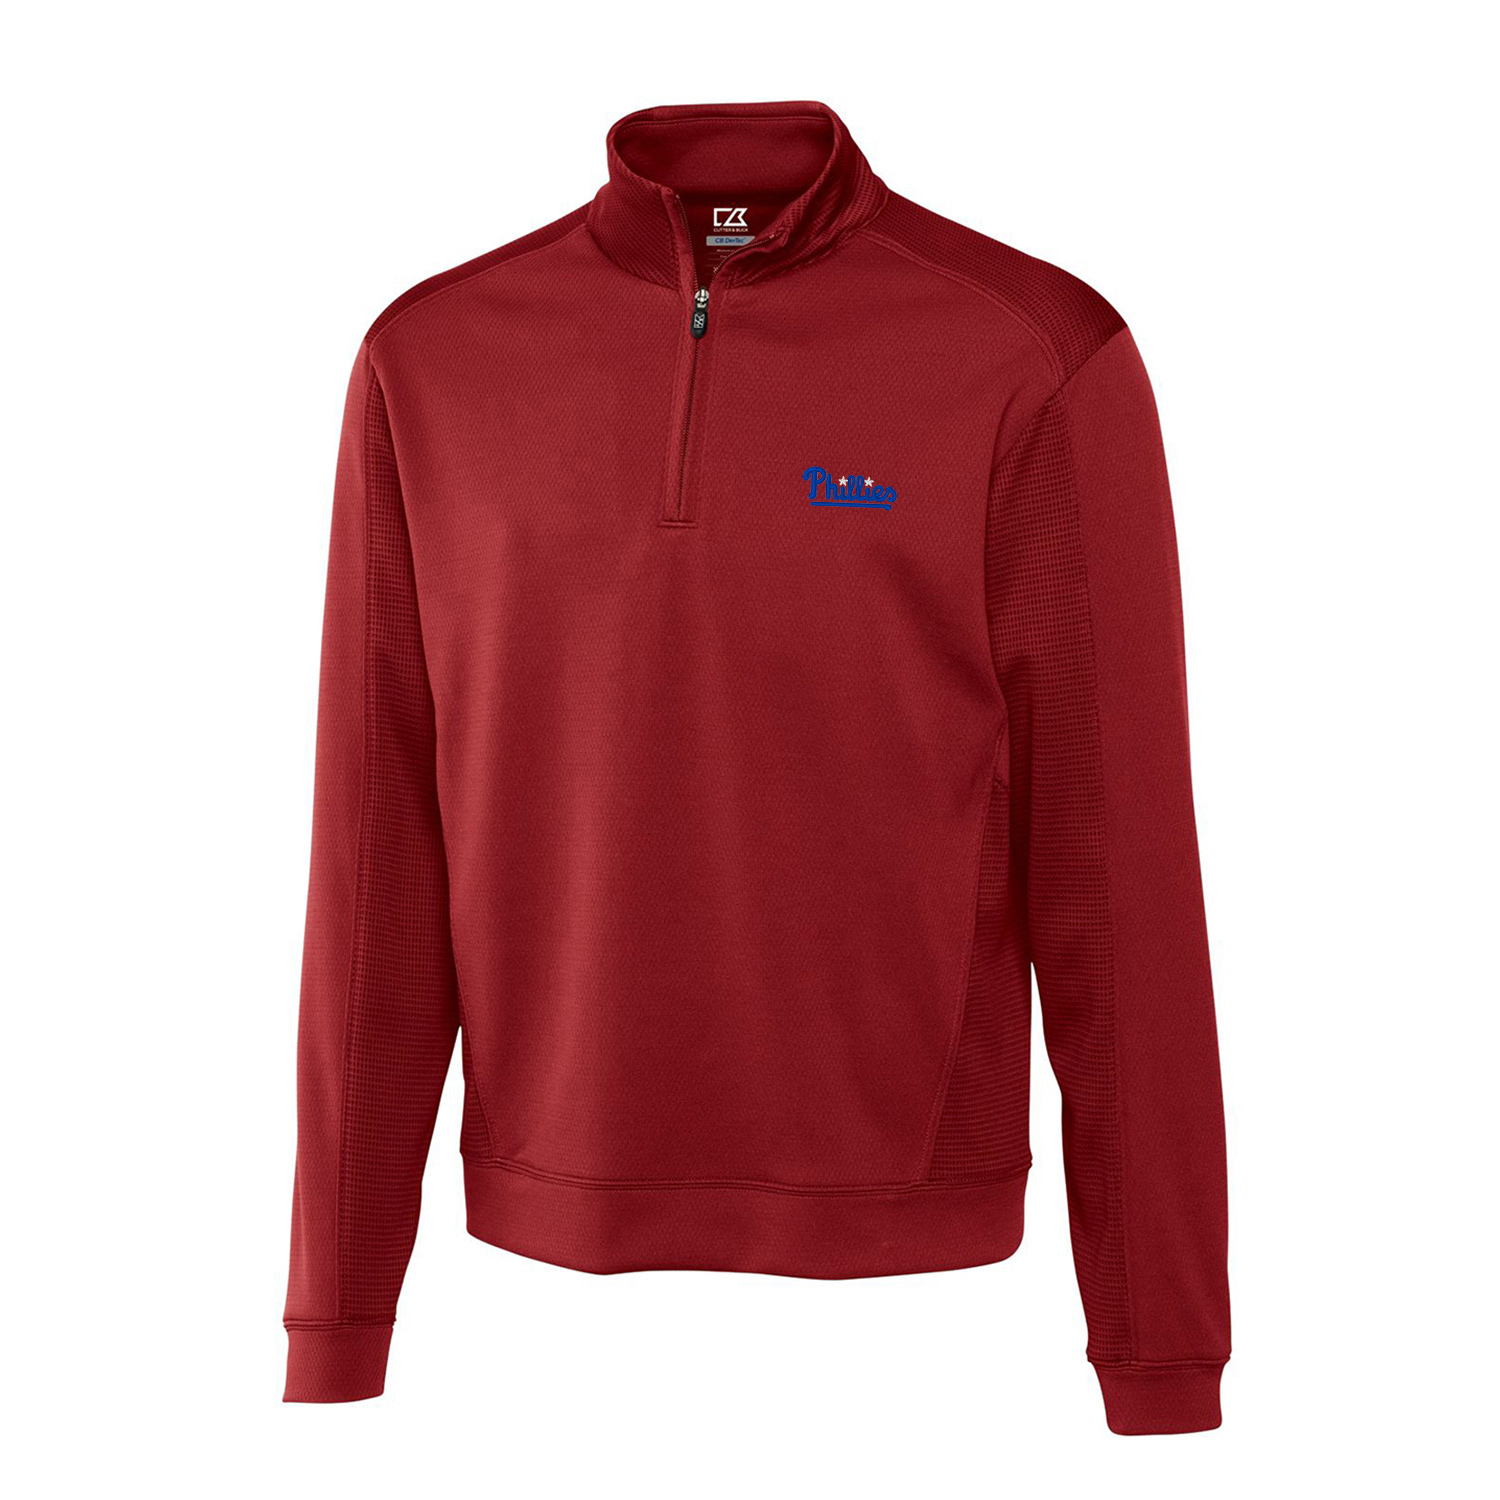 Philadelphia Phillies Cutter & Buck Half-Zip DryTec Edge Pullover Jacket - Cardinal